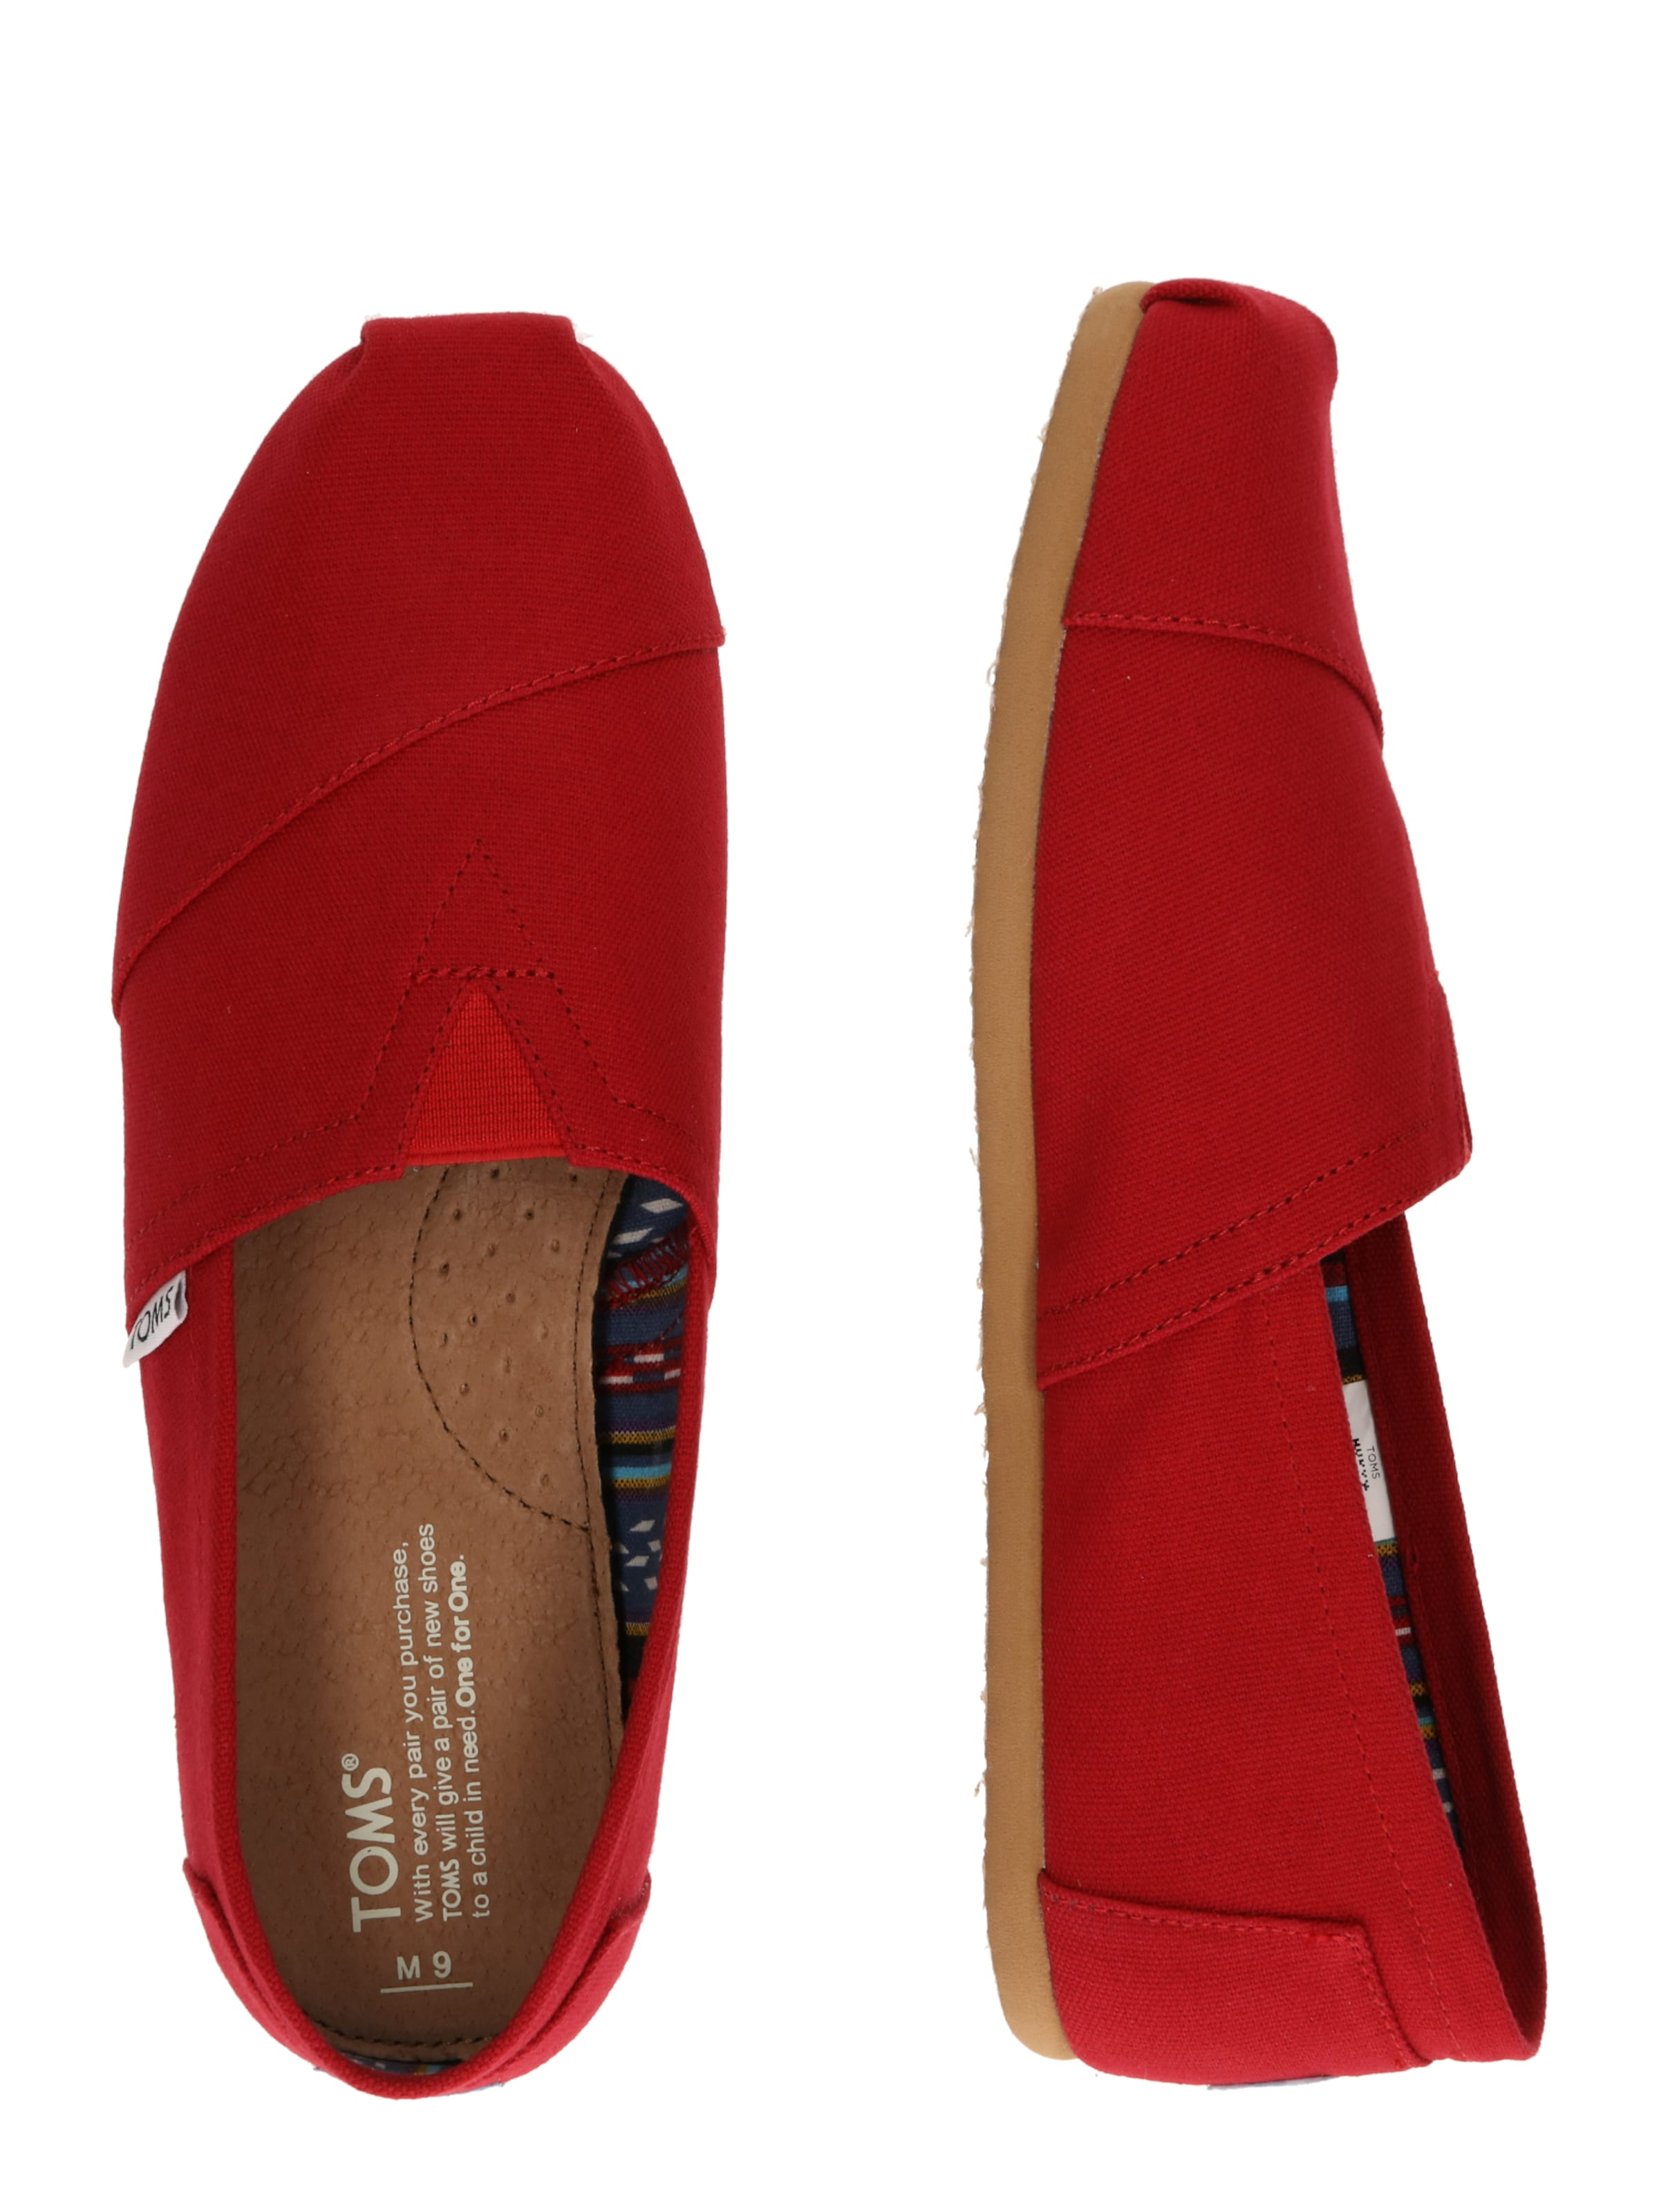 'alpargata' 'alpargata' Toms Slipper Toms Rot Toms Slipper In Slipper In Rot drWCoBex